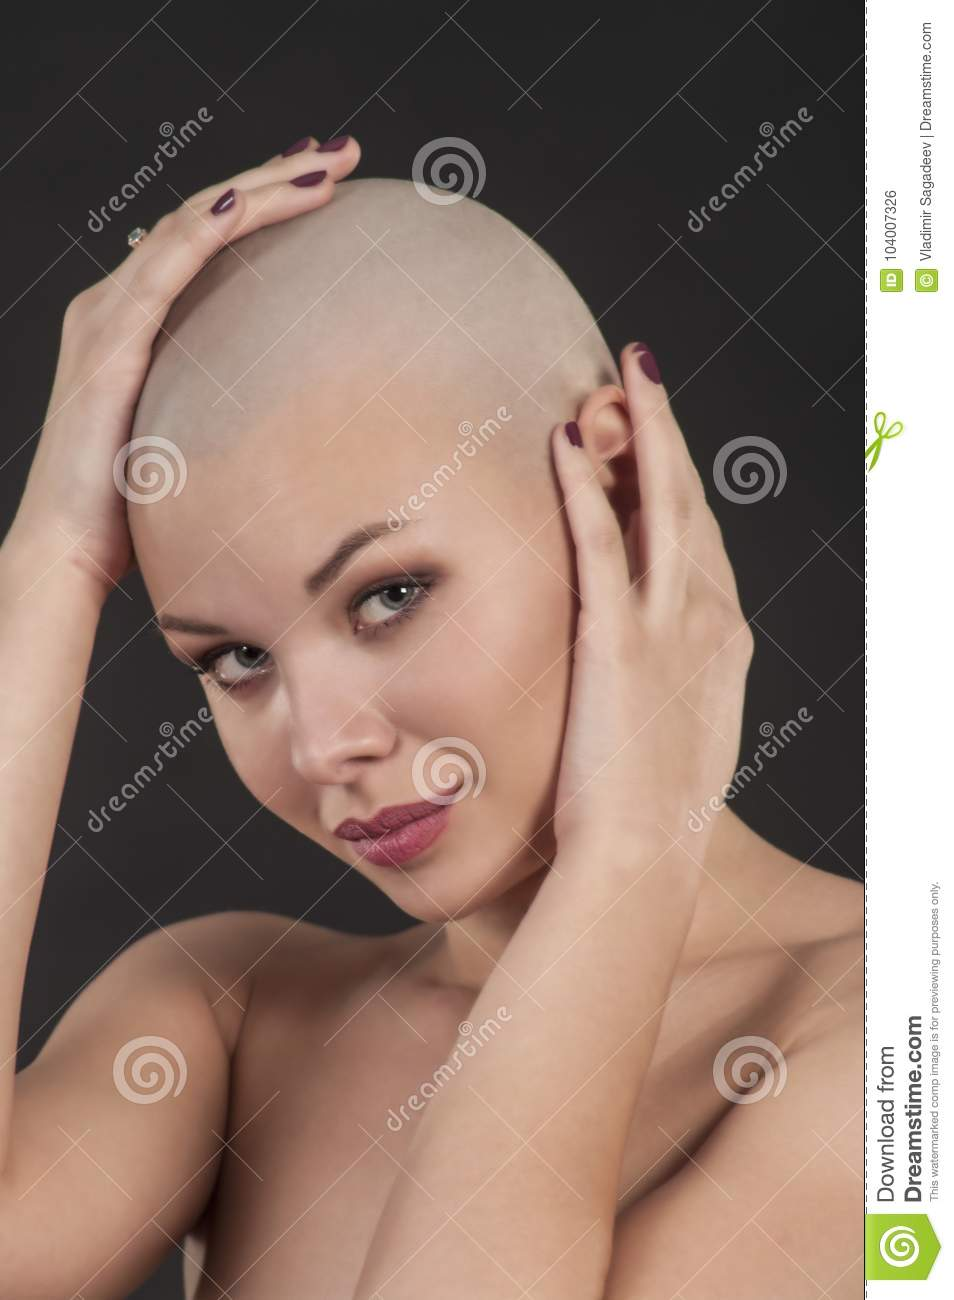 Frowny face girl nude